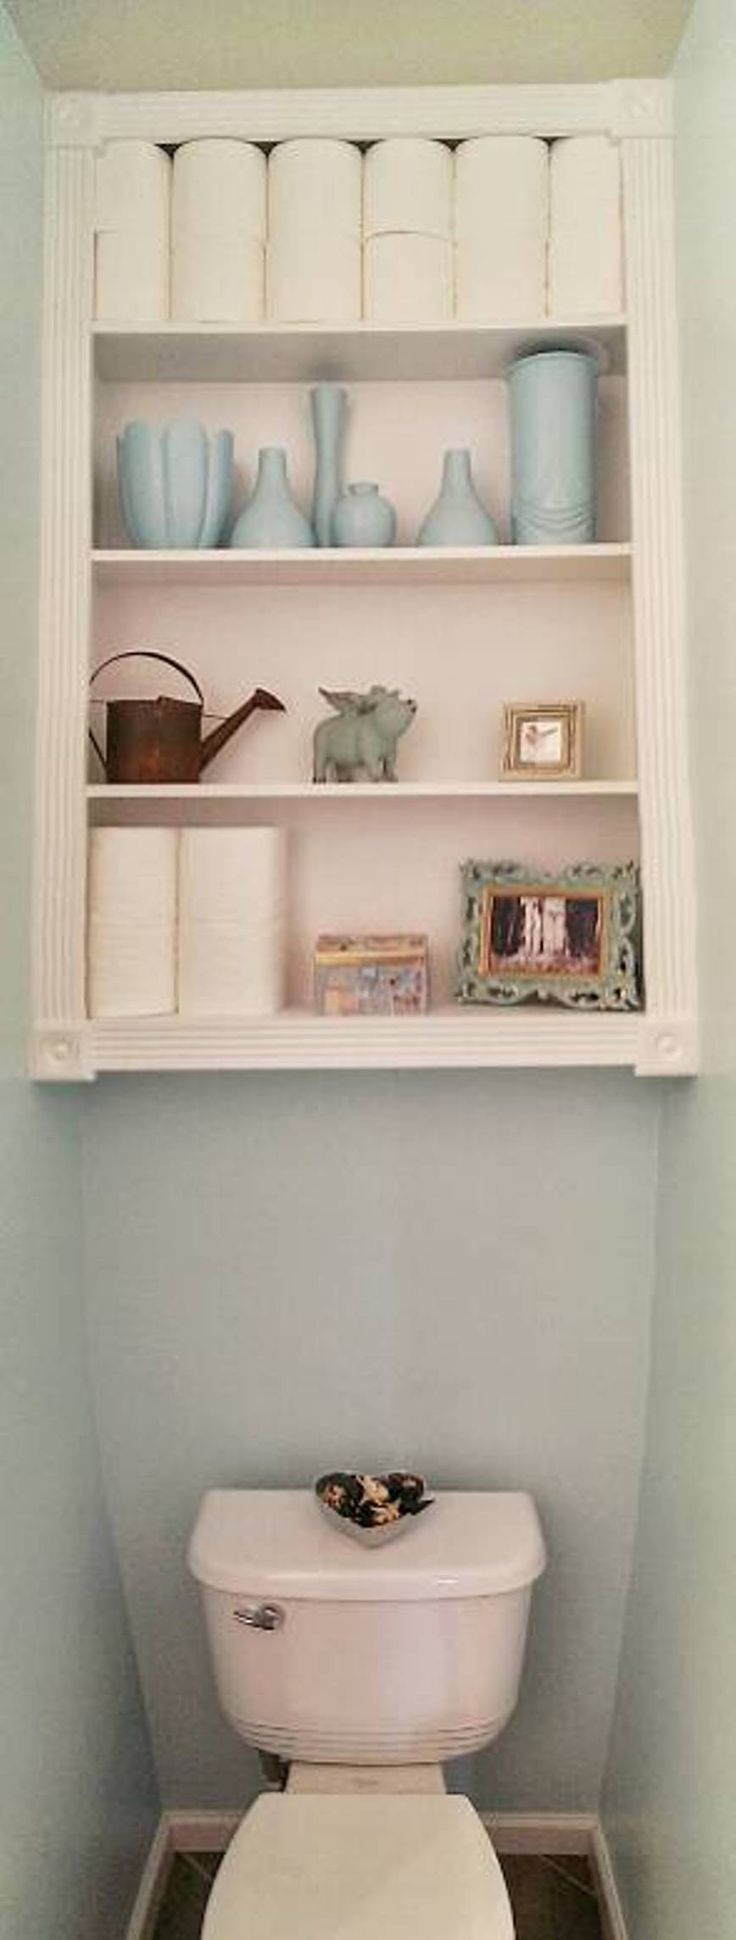 17 best ideas about shelves over toilet on pinterest for Bathroom cabinets above toilet